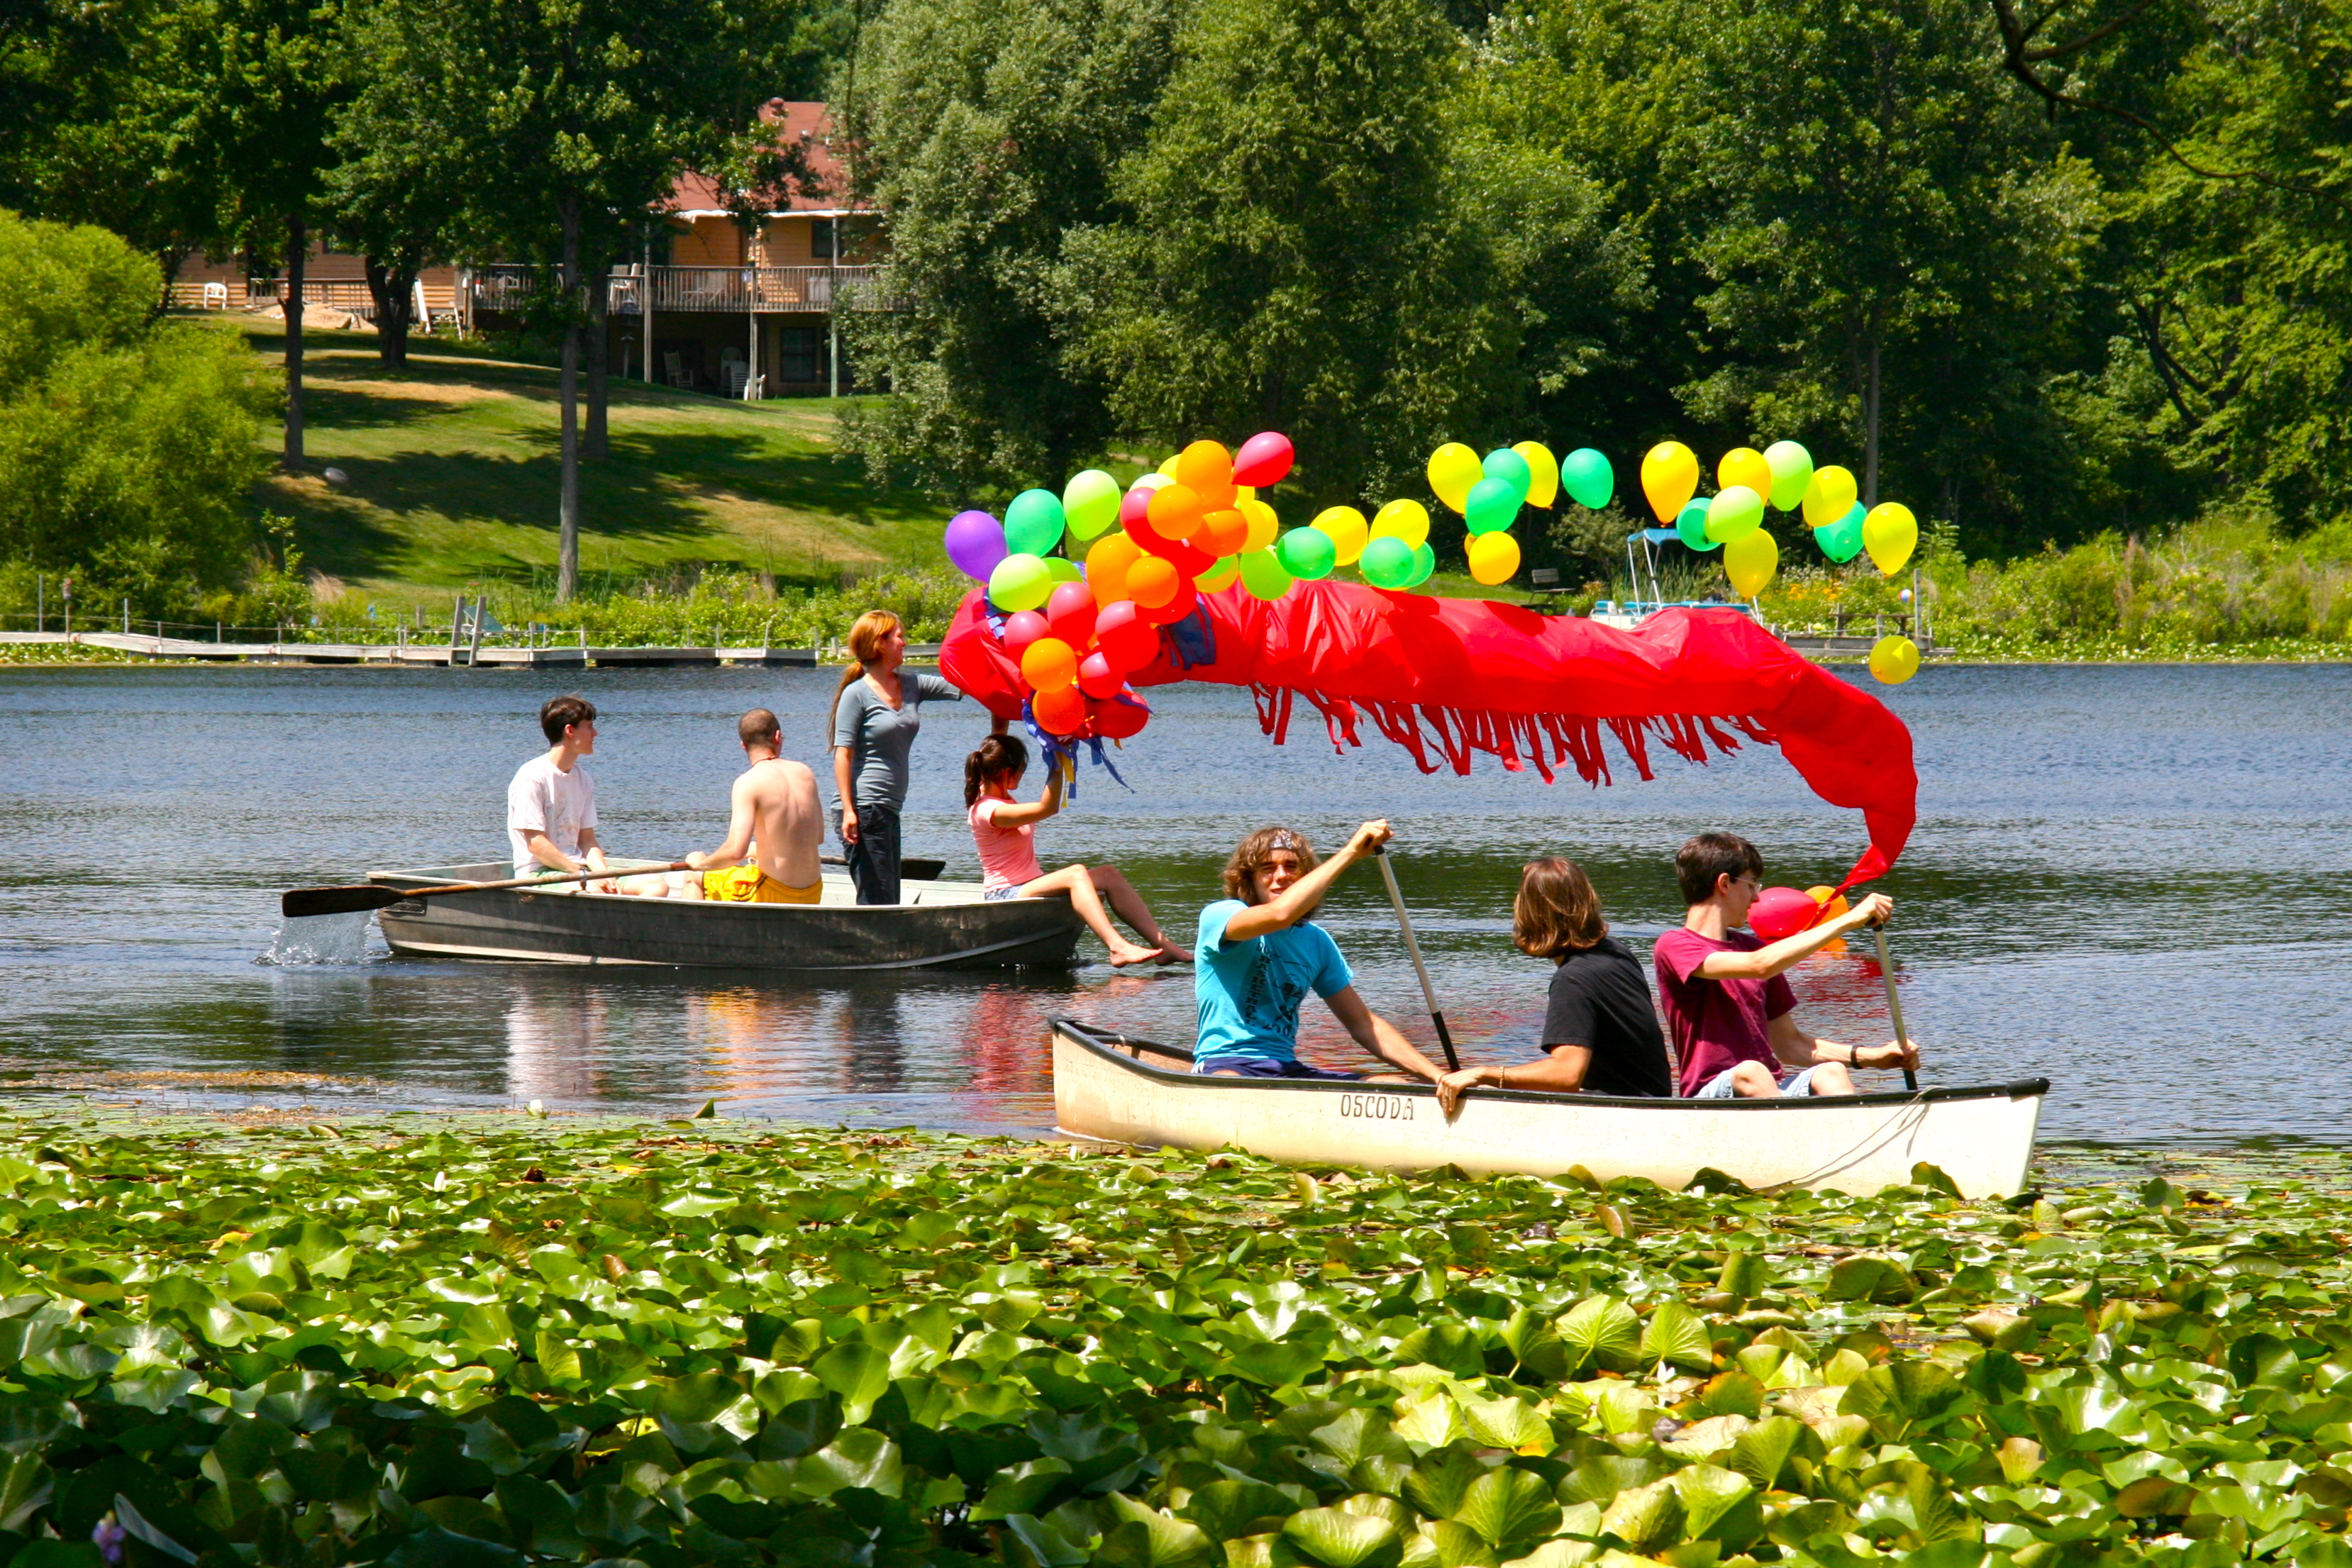 Great balloon Dragon on lake